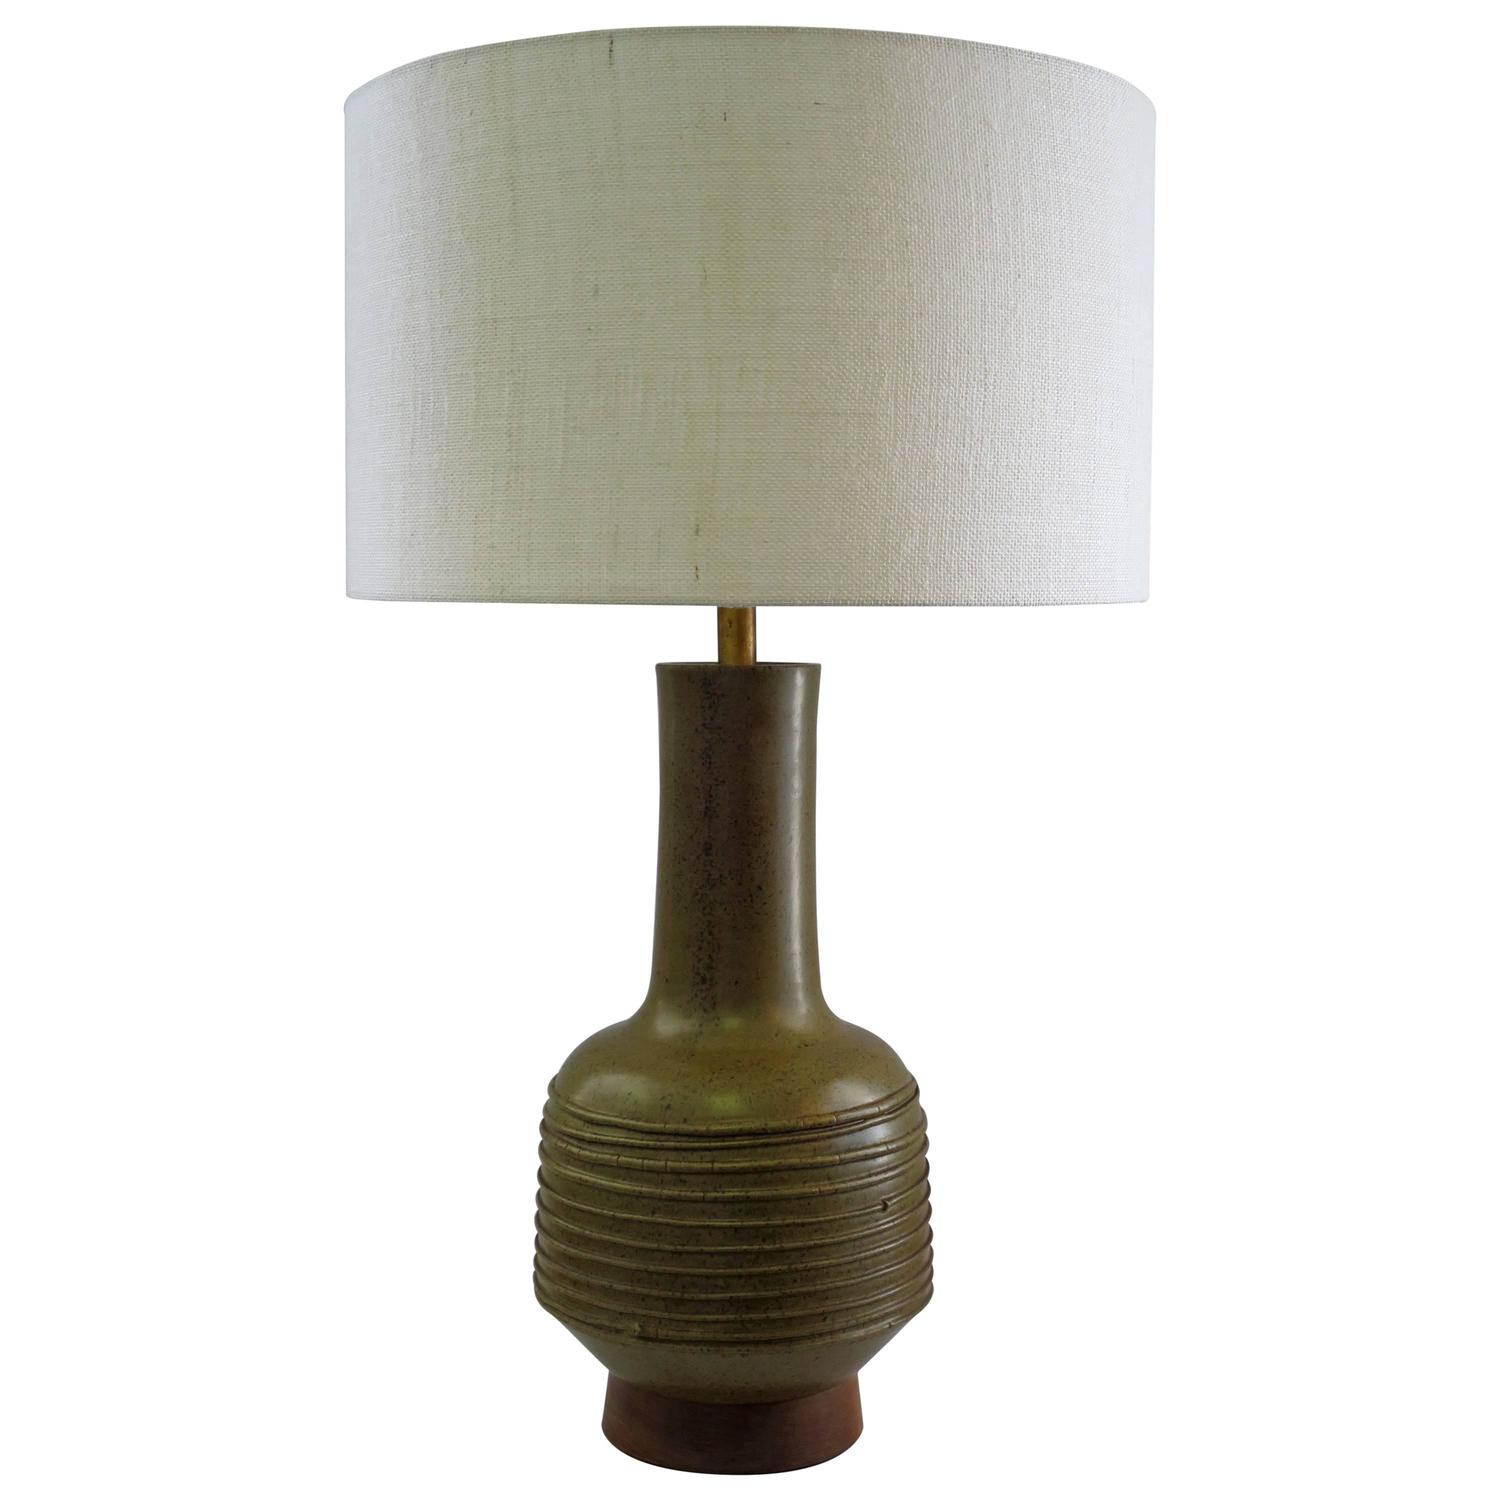 Mid century modern ceramic table lamp at 1stdibs for Ceramic table lamps